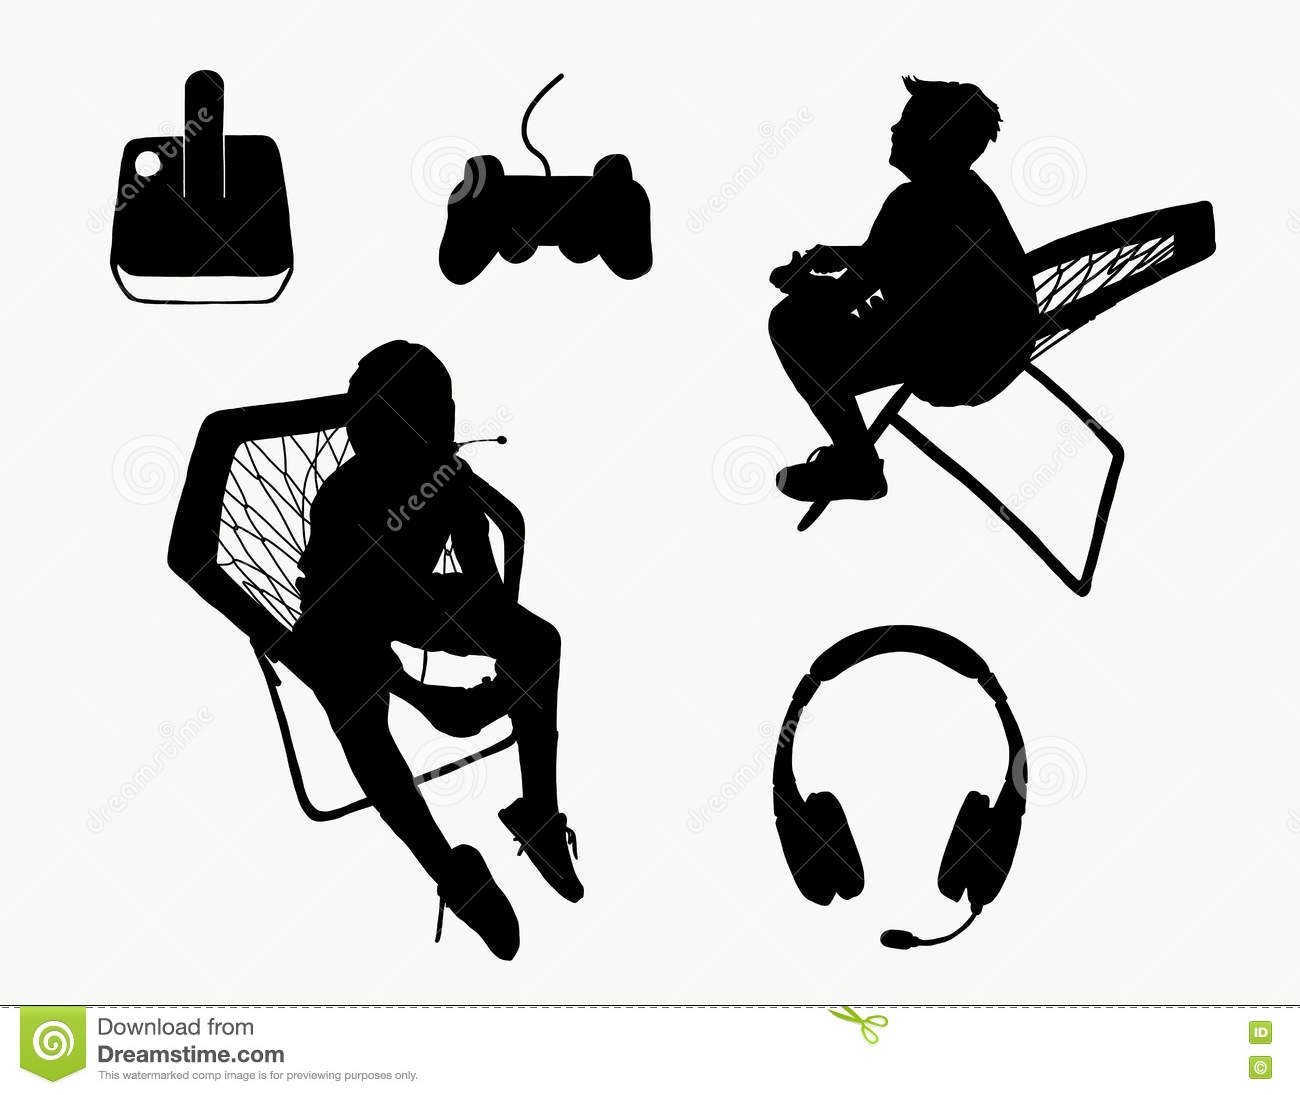 Video Game Silhouettes Stock Vector Illustration Of Nintendo 80766869